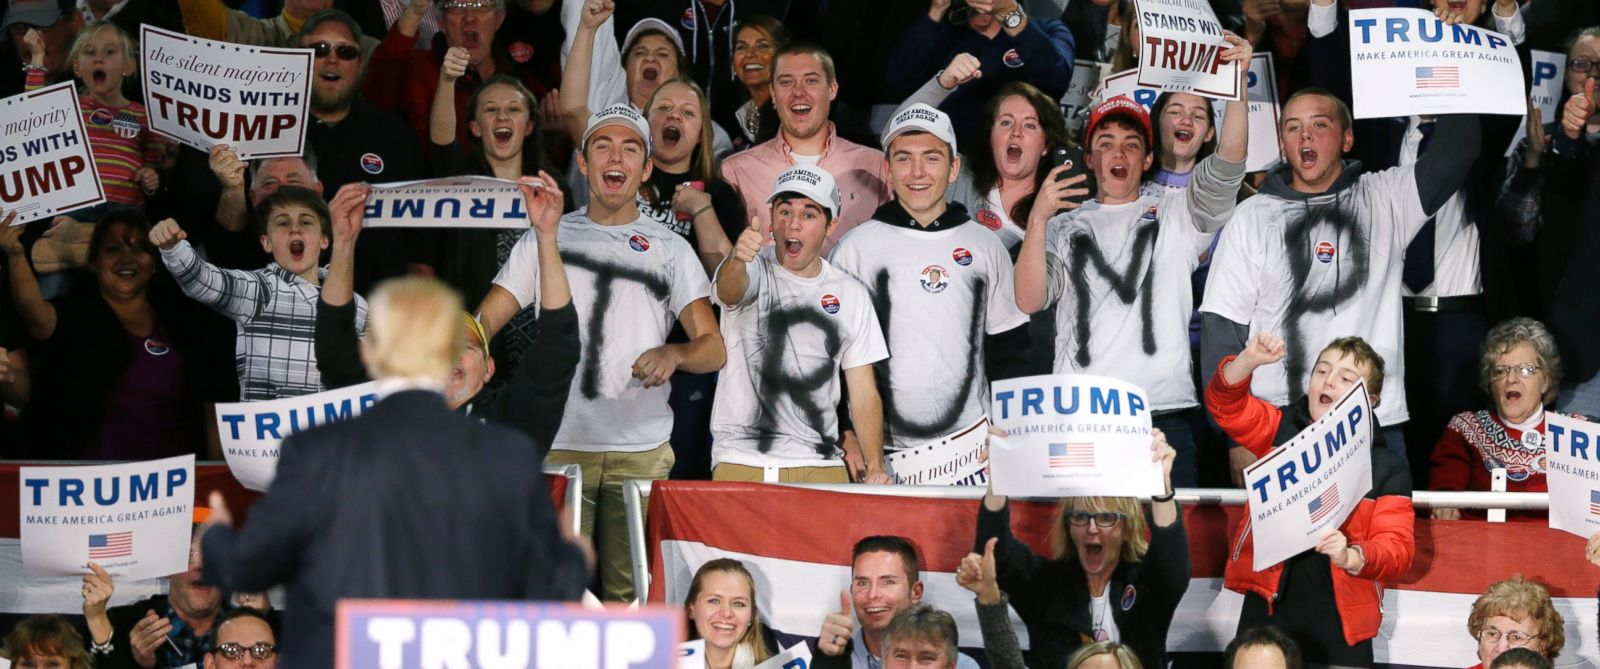 PHOTO: Republican presidential candidate Donald Trump is greeted by supporters before speaking at a campaign rally, Dec. 5, 2015, in Davenport, Iowa.